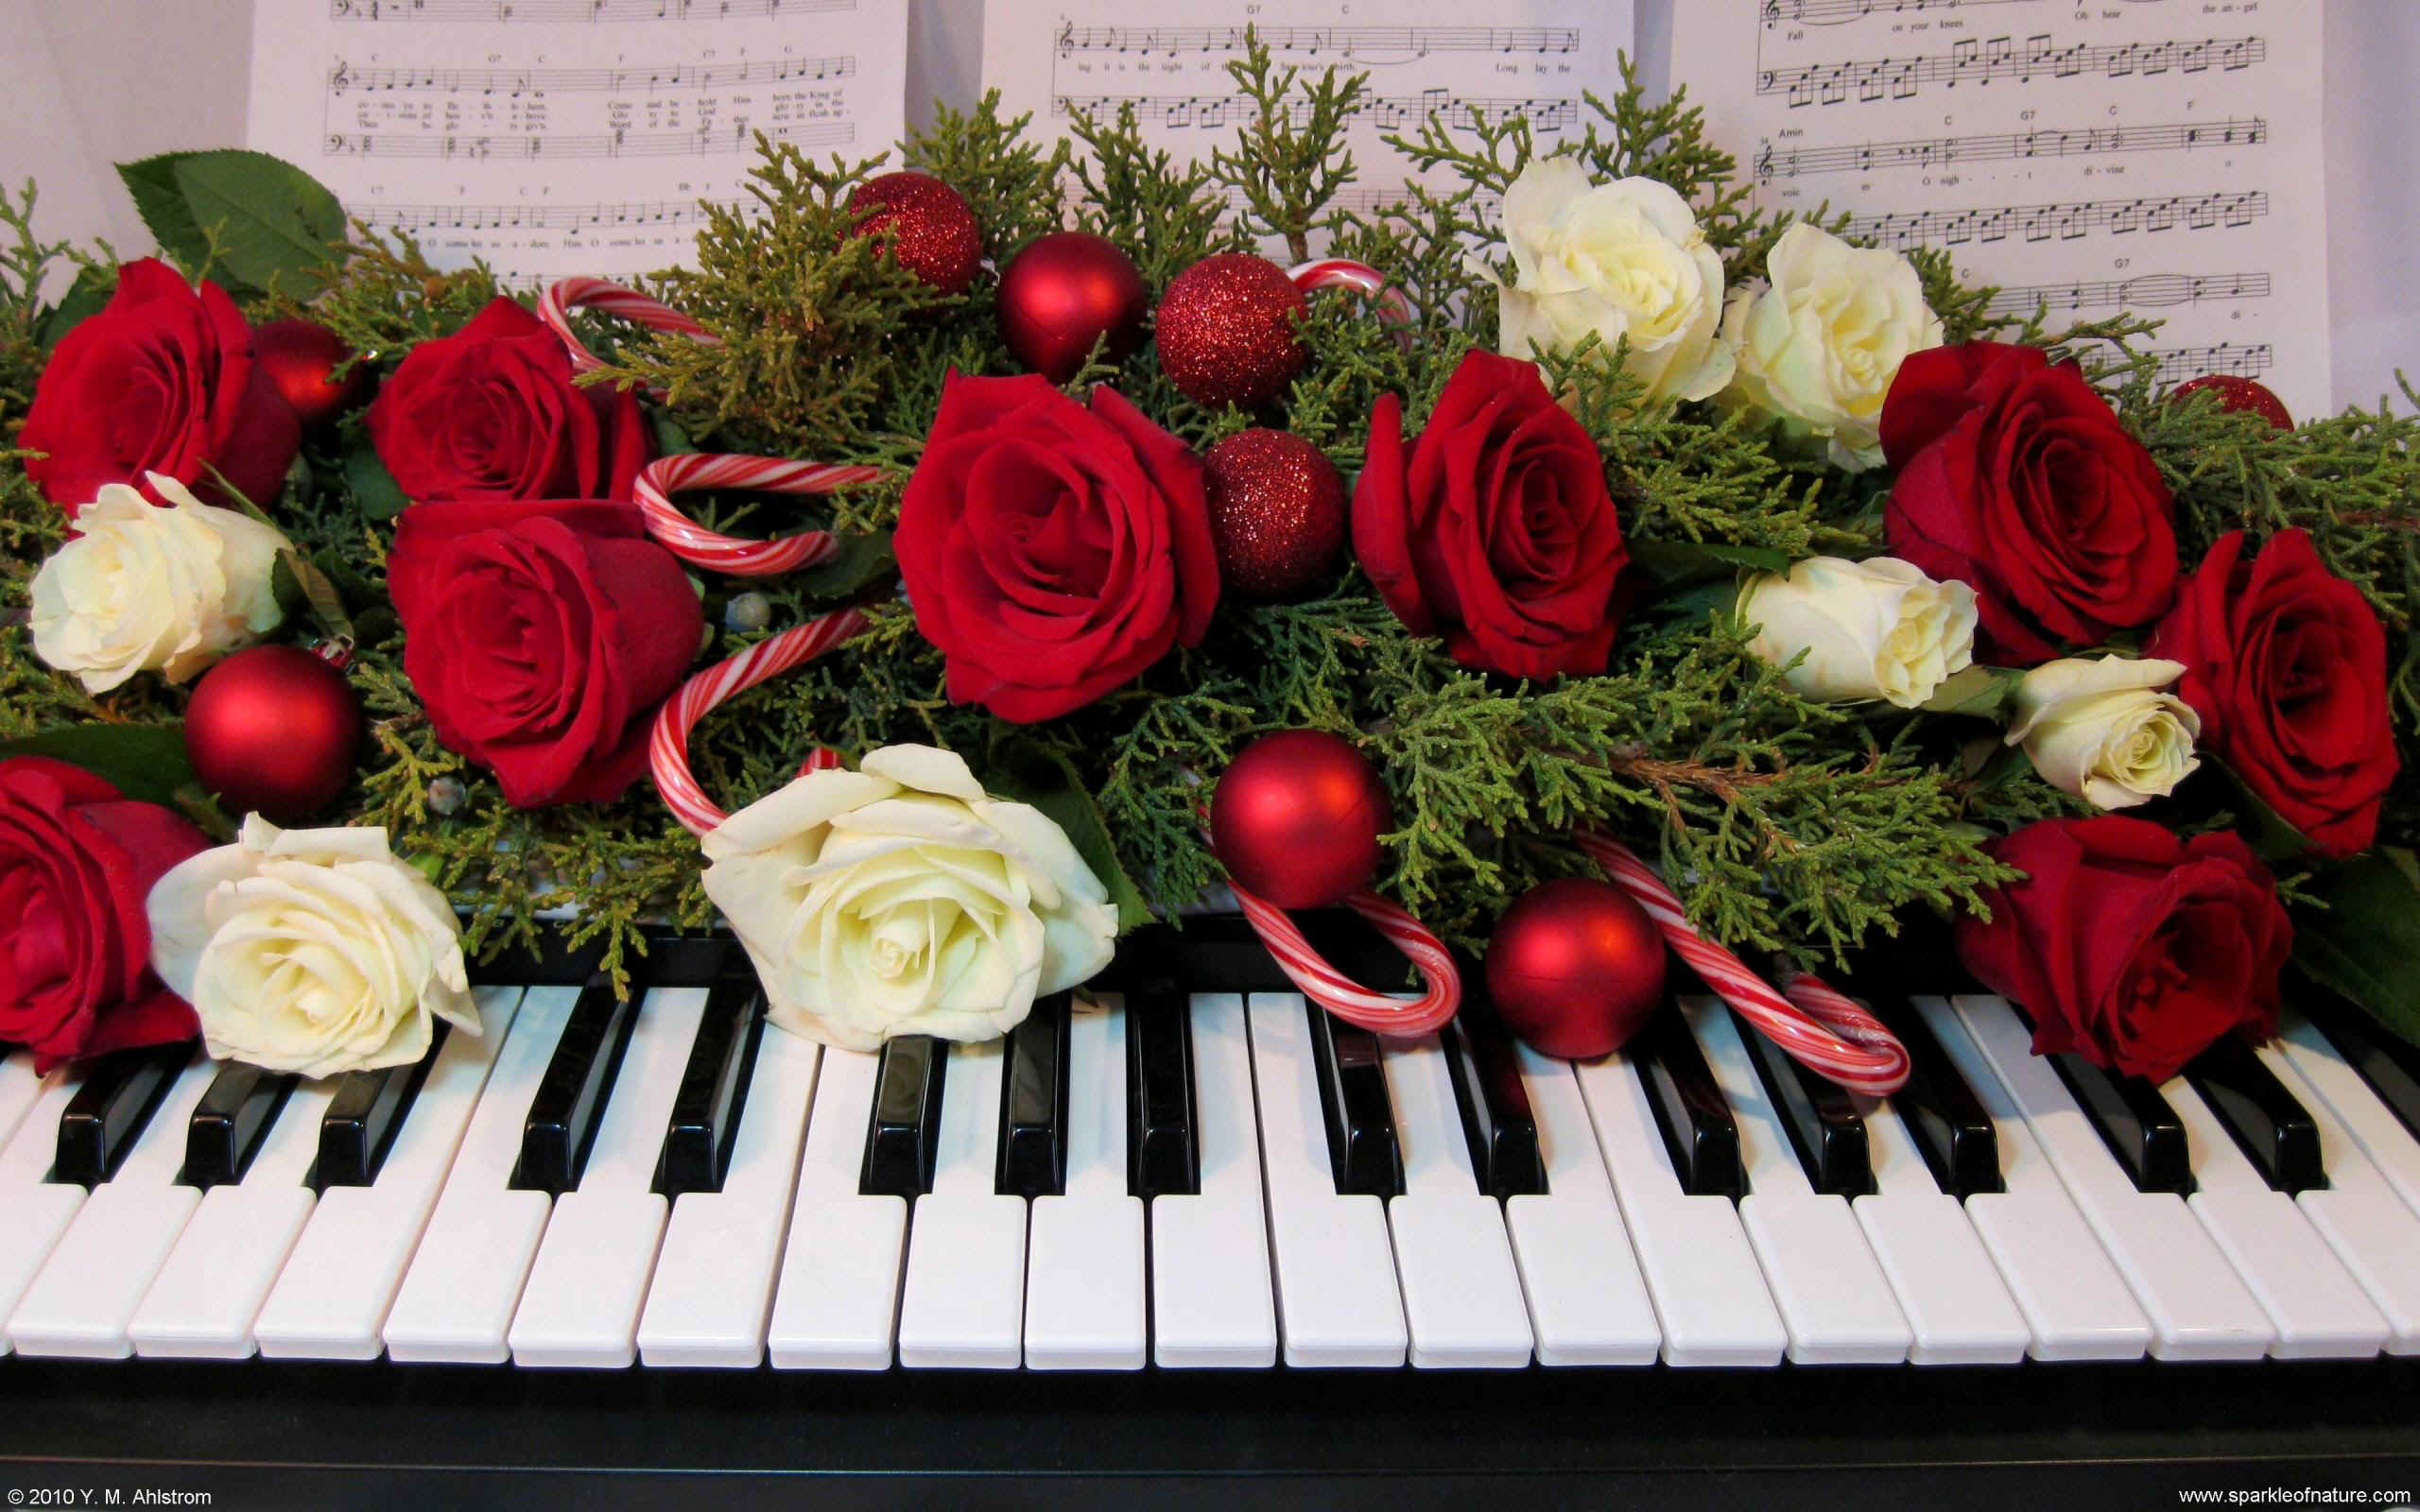 16015 christmas keyboard w 2560x1600.jpg (495161 bytes)